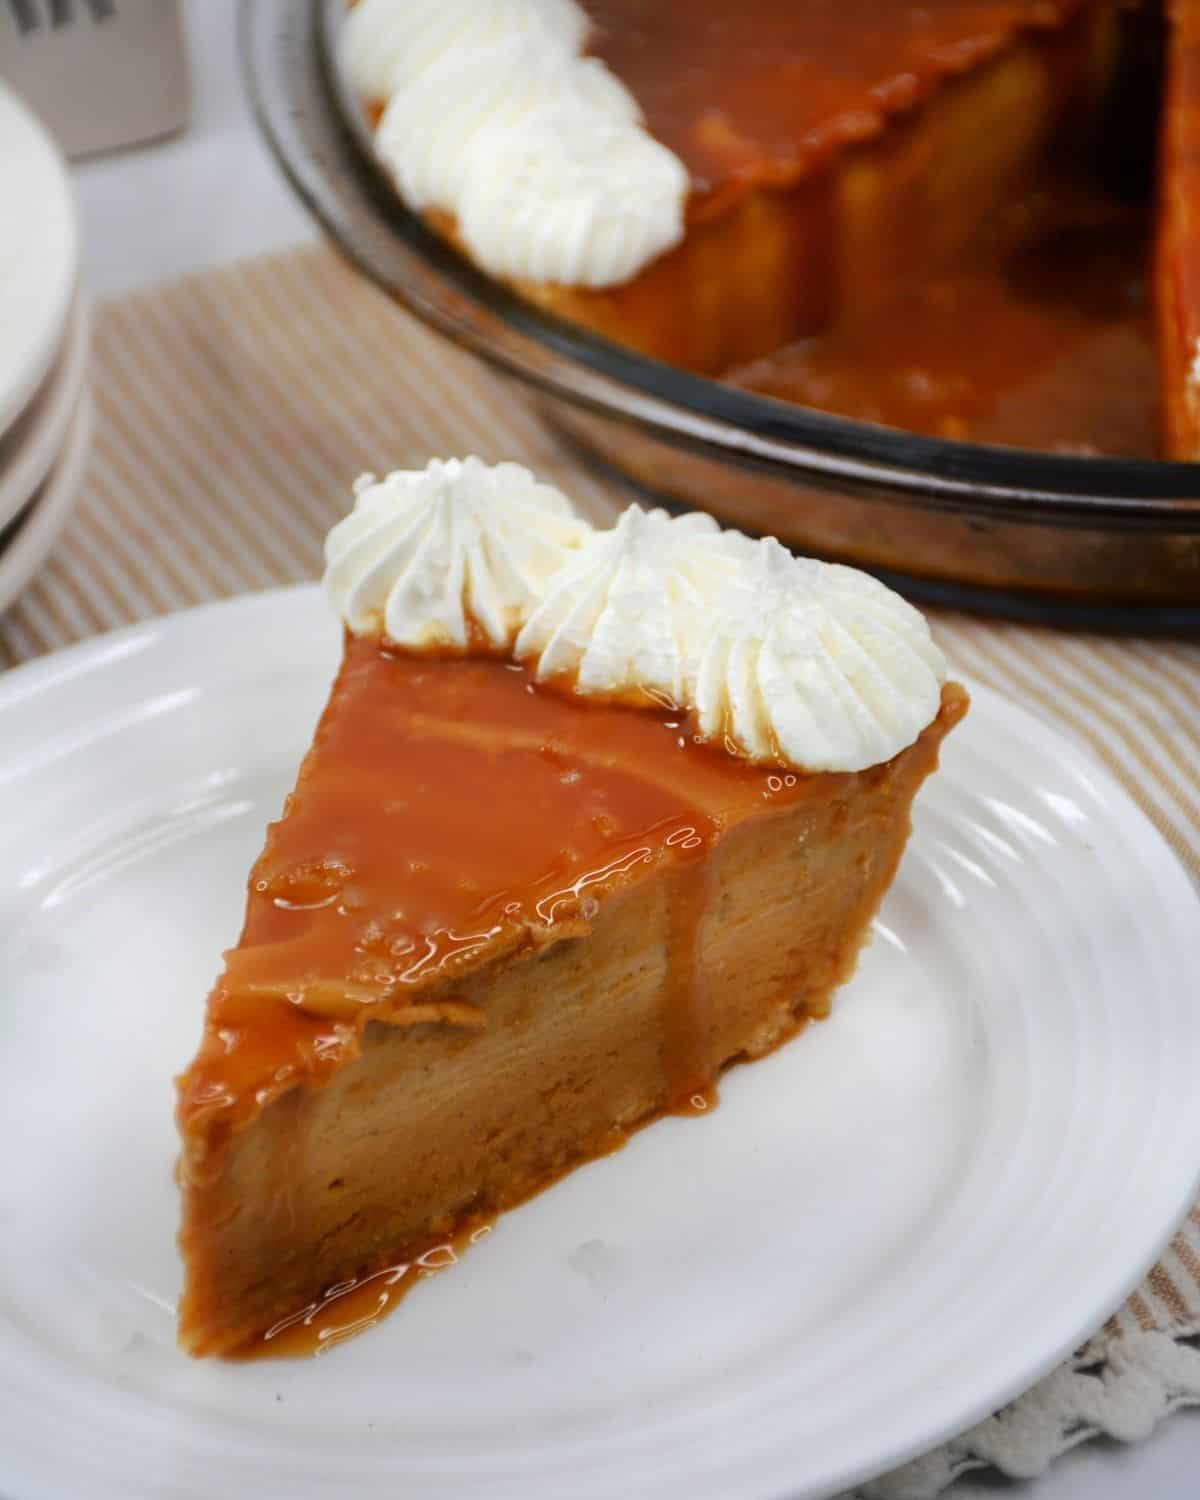 A slice of salted caramel pie topped with caramel and whipped cream.